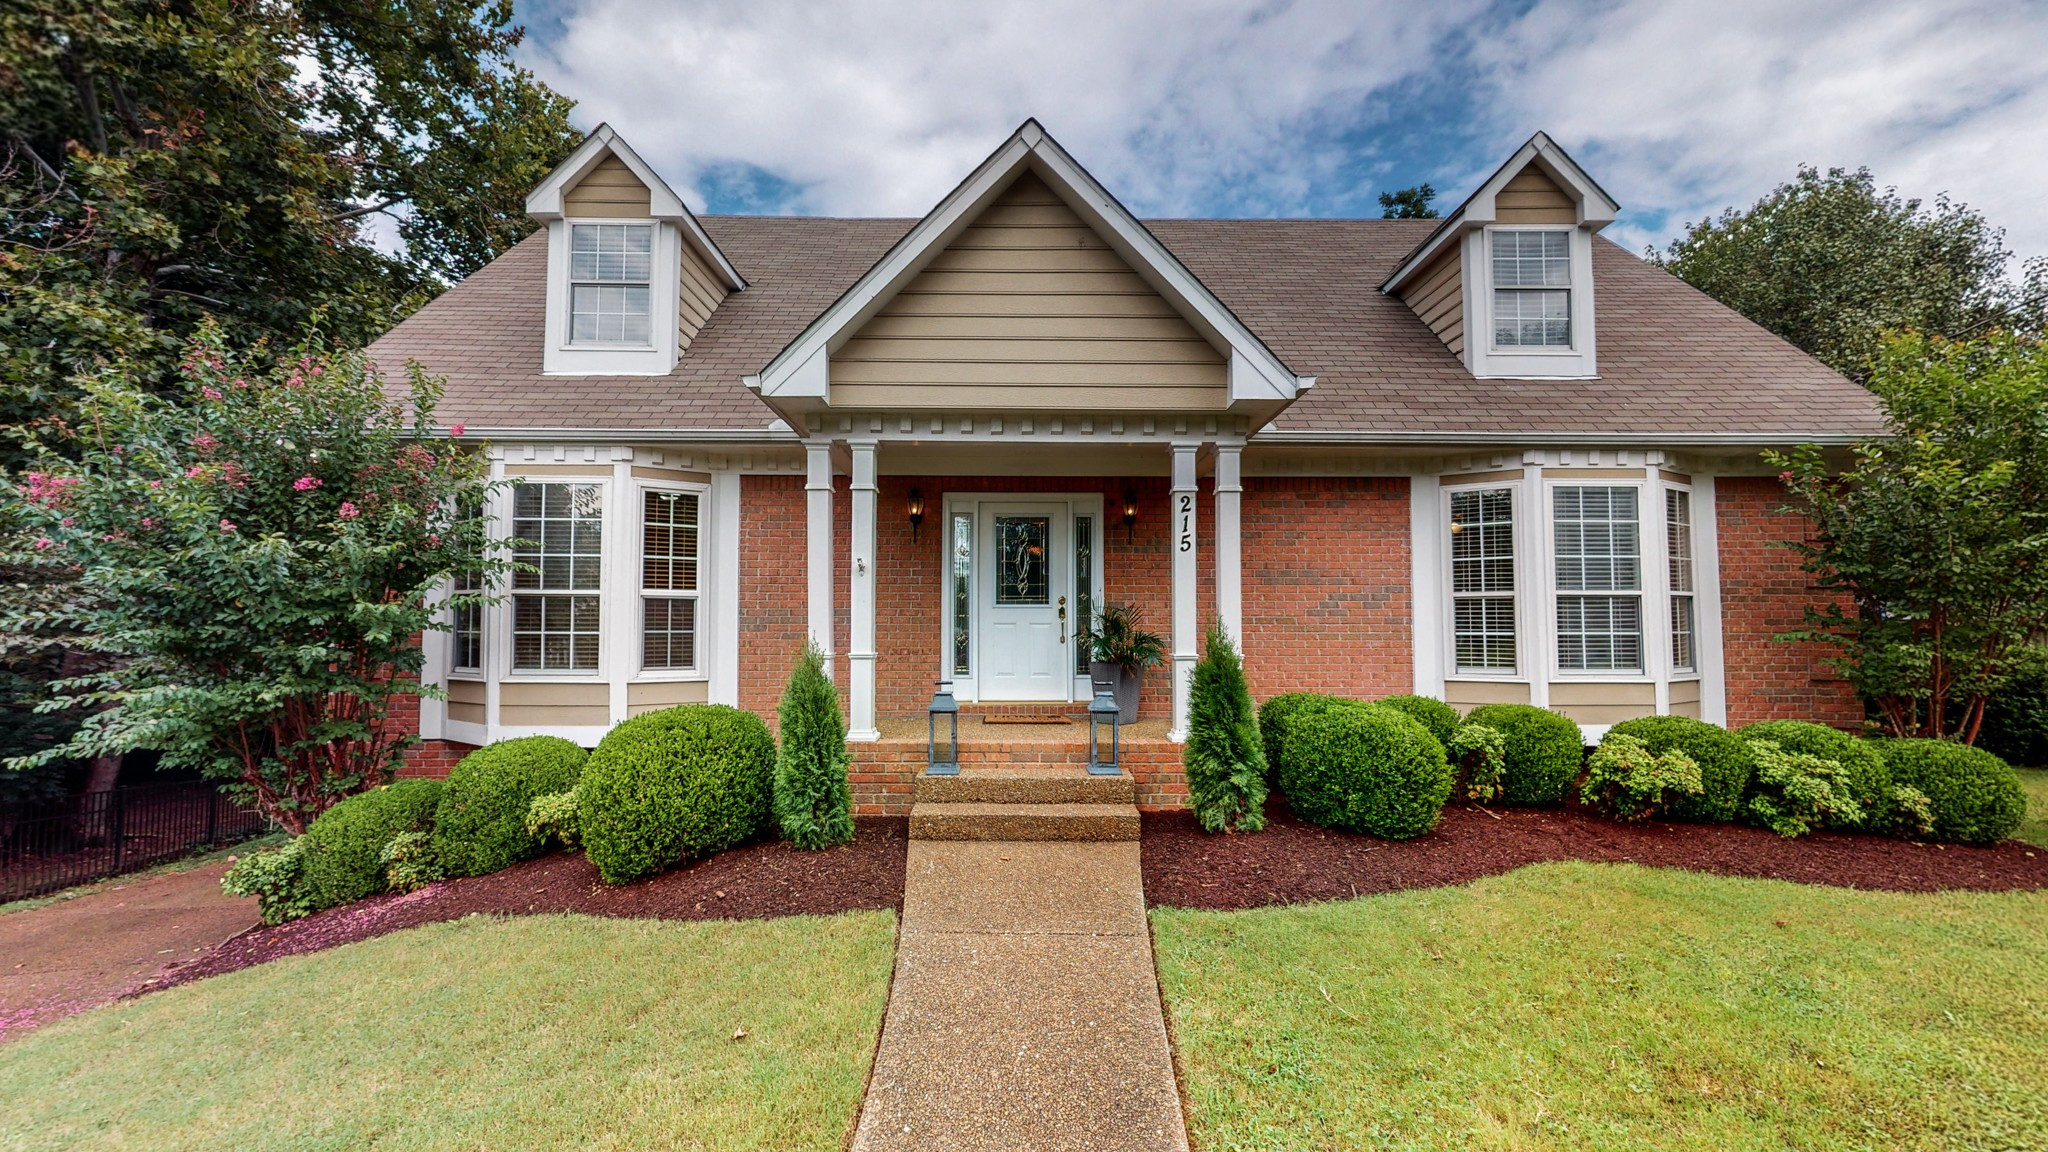 LOCATION LOCATION!!!! Less than 3 miles to Historic Downtown Franklin and into Cool Springs. This home sits on a cul-de-sac and has a beautiful tree lined park like setting backyard. No HOA and home has been well maintained.